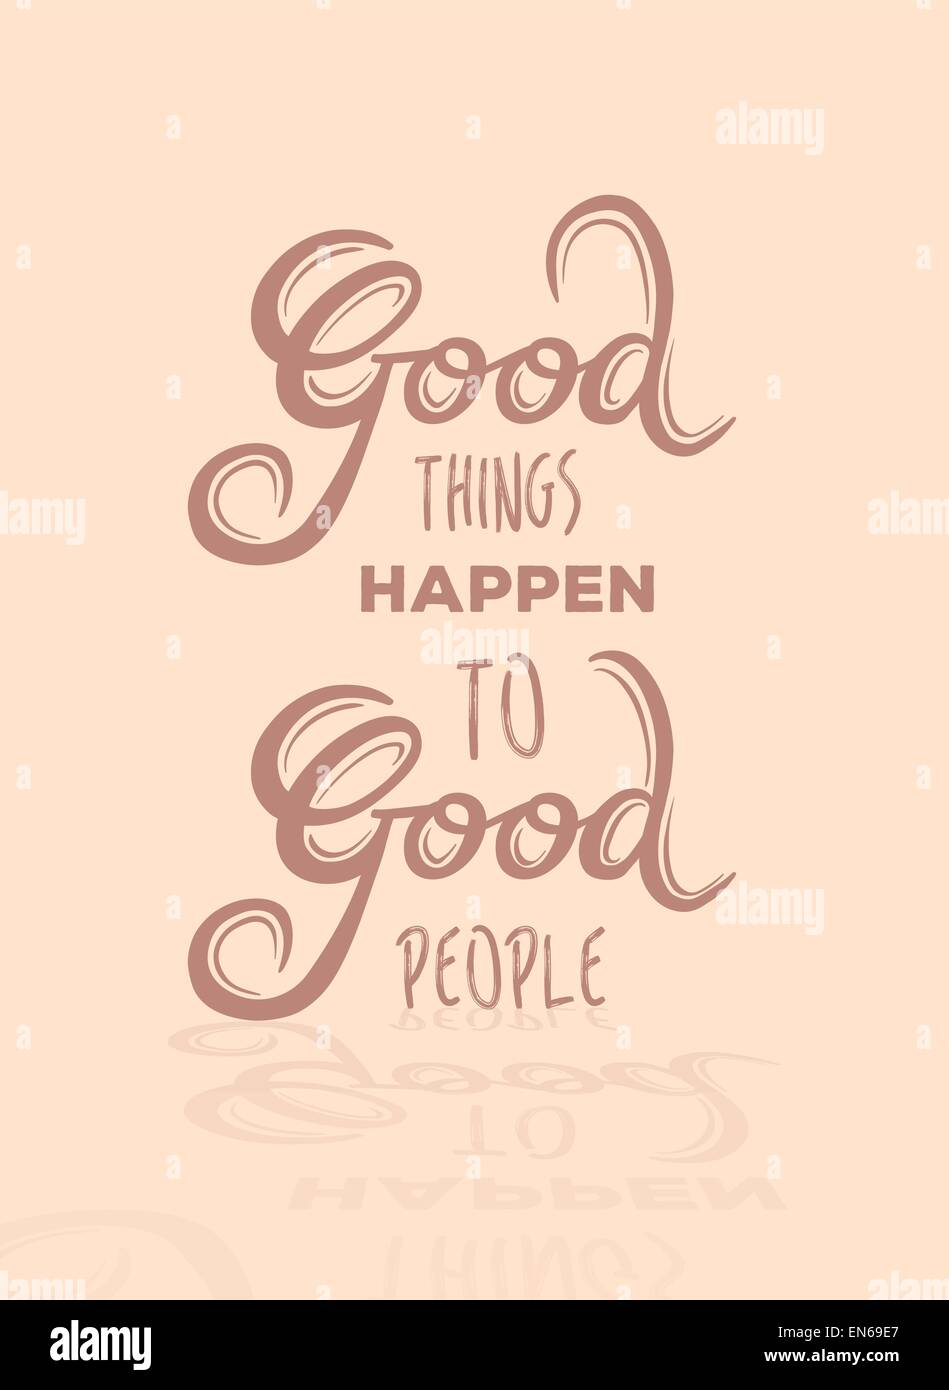 Good things happen to good people vector - Stock Image